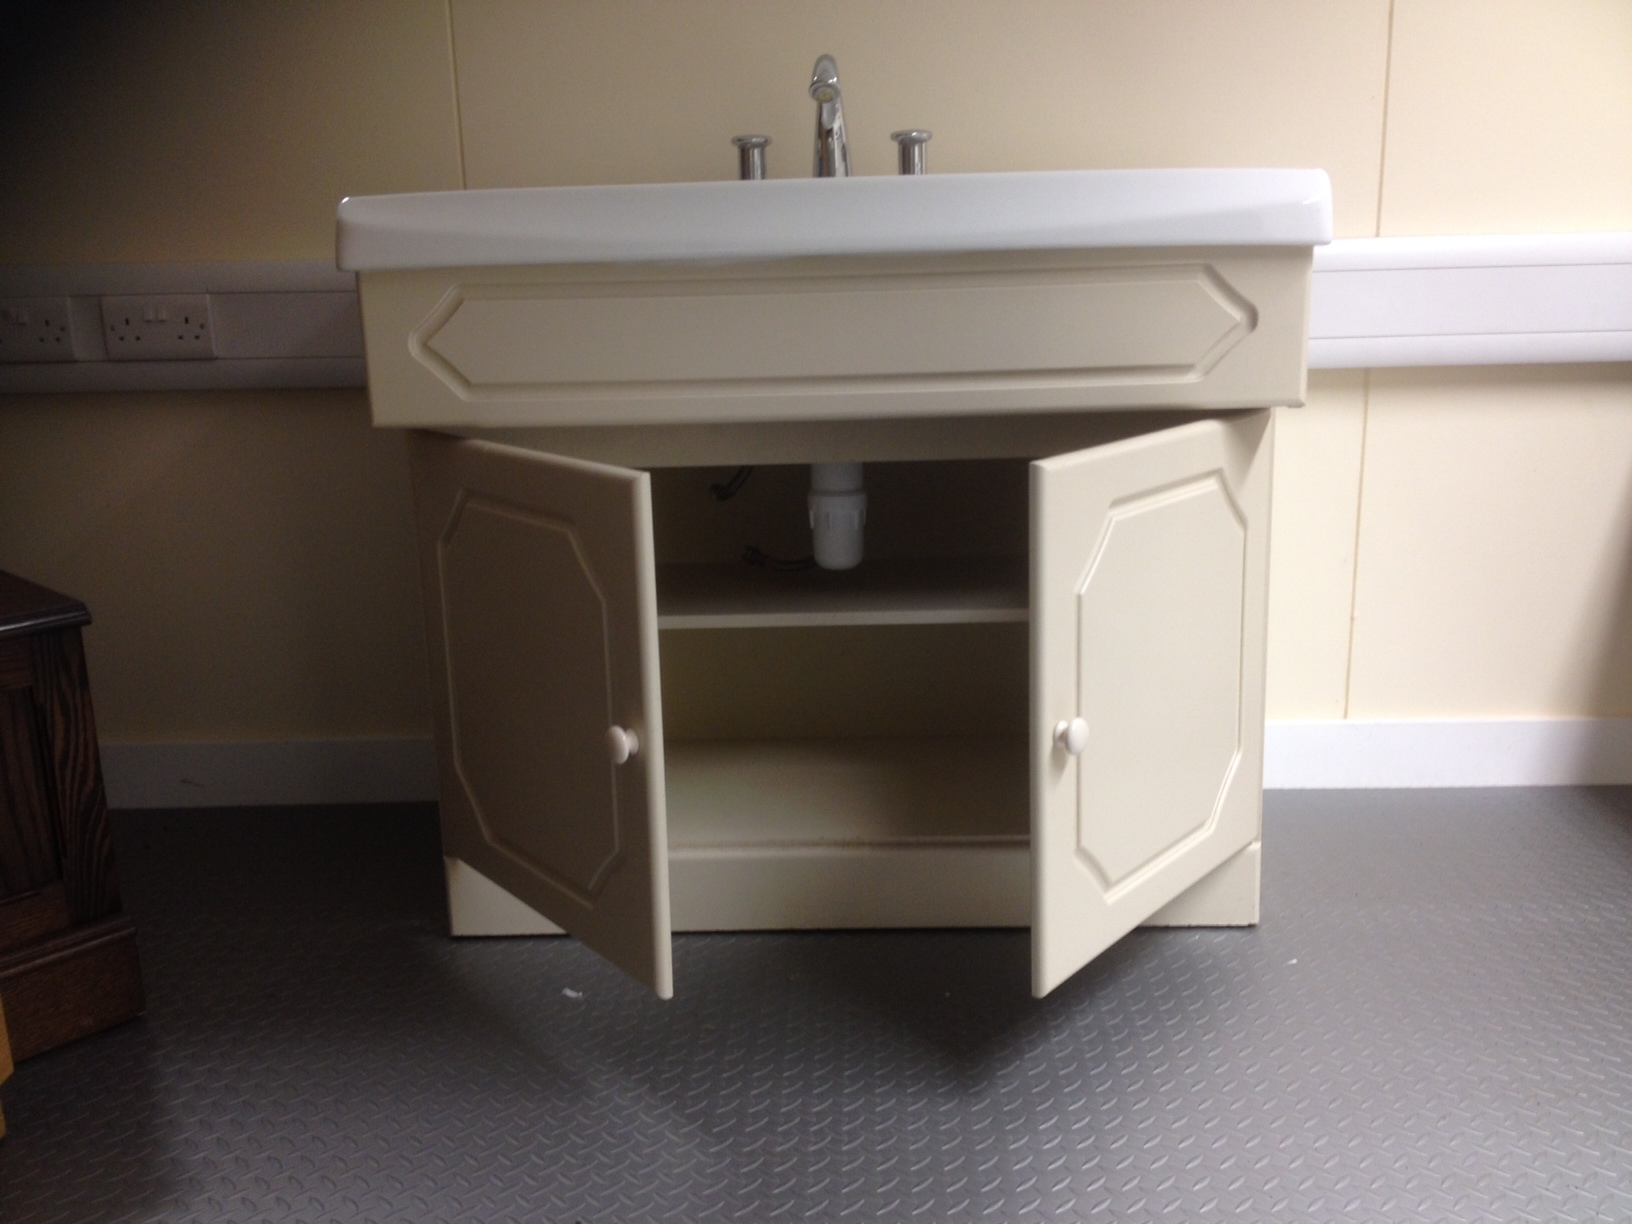 Complete Vanity Units Second Hand Vanity Unit Complete With Selles Sink Wash